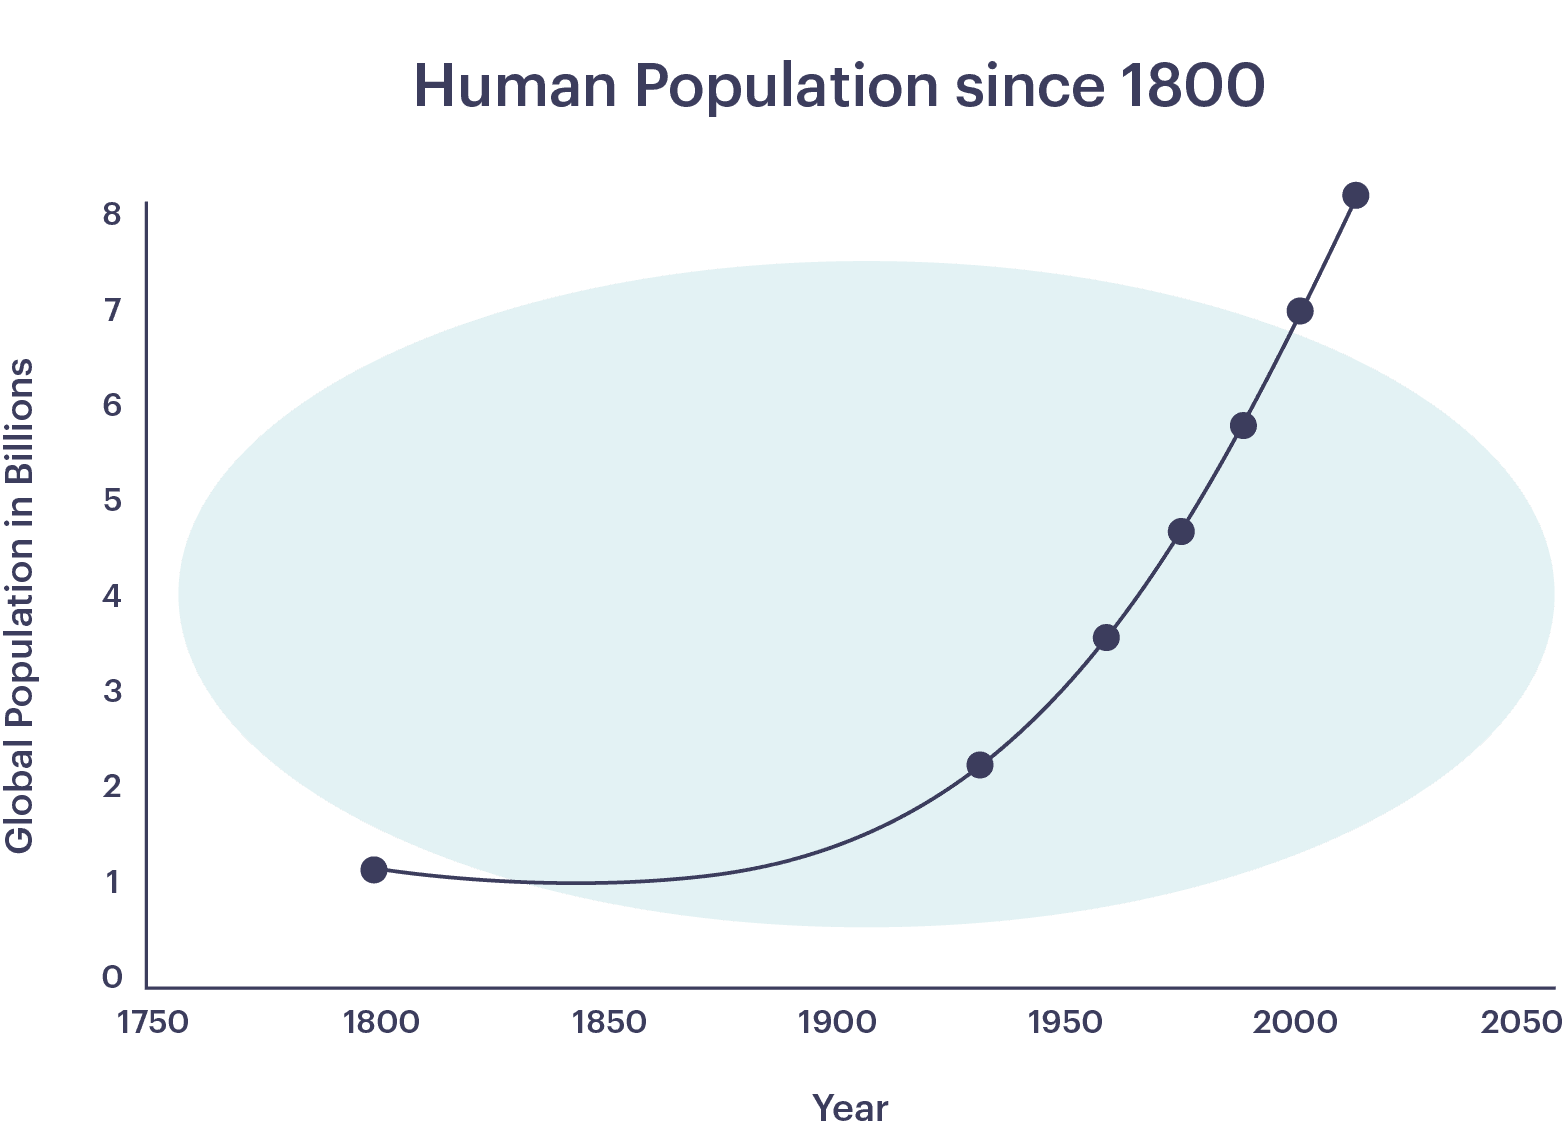 Chart of human population growth from 1800 to present. Exponential growth begins in the mid 1800s